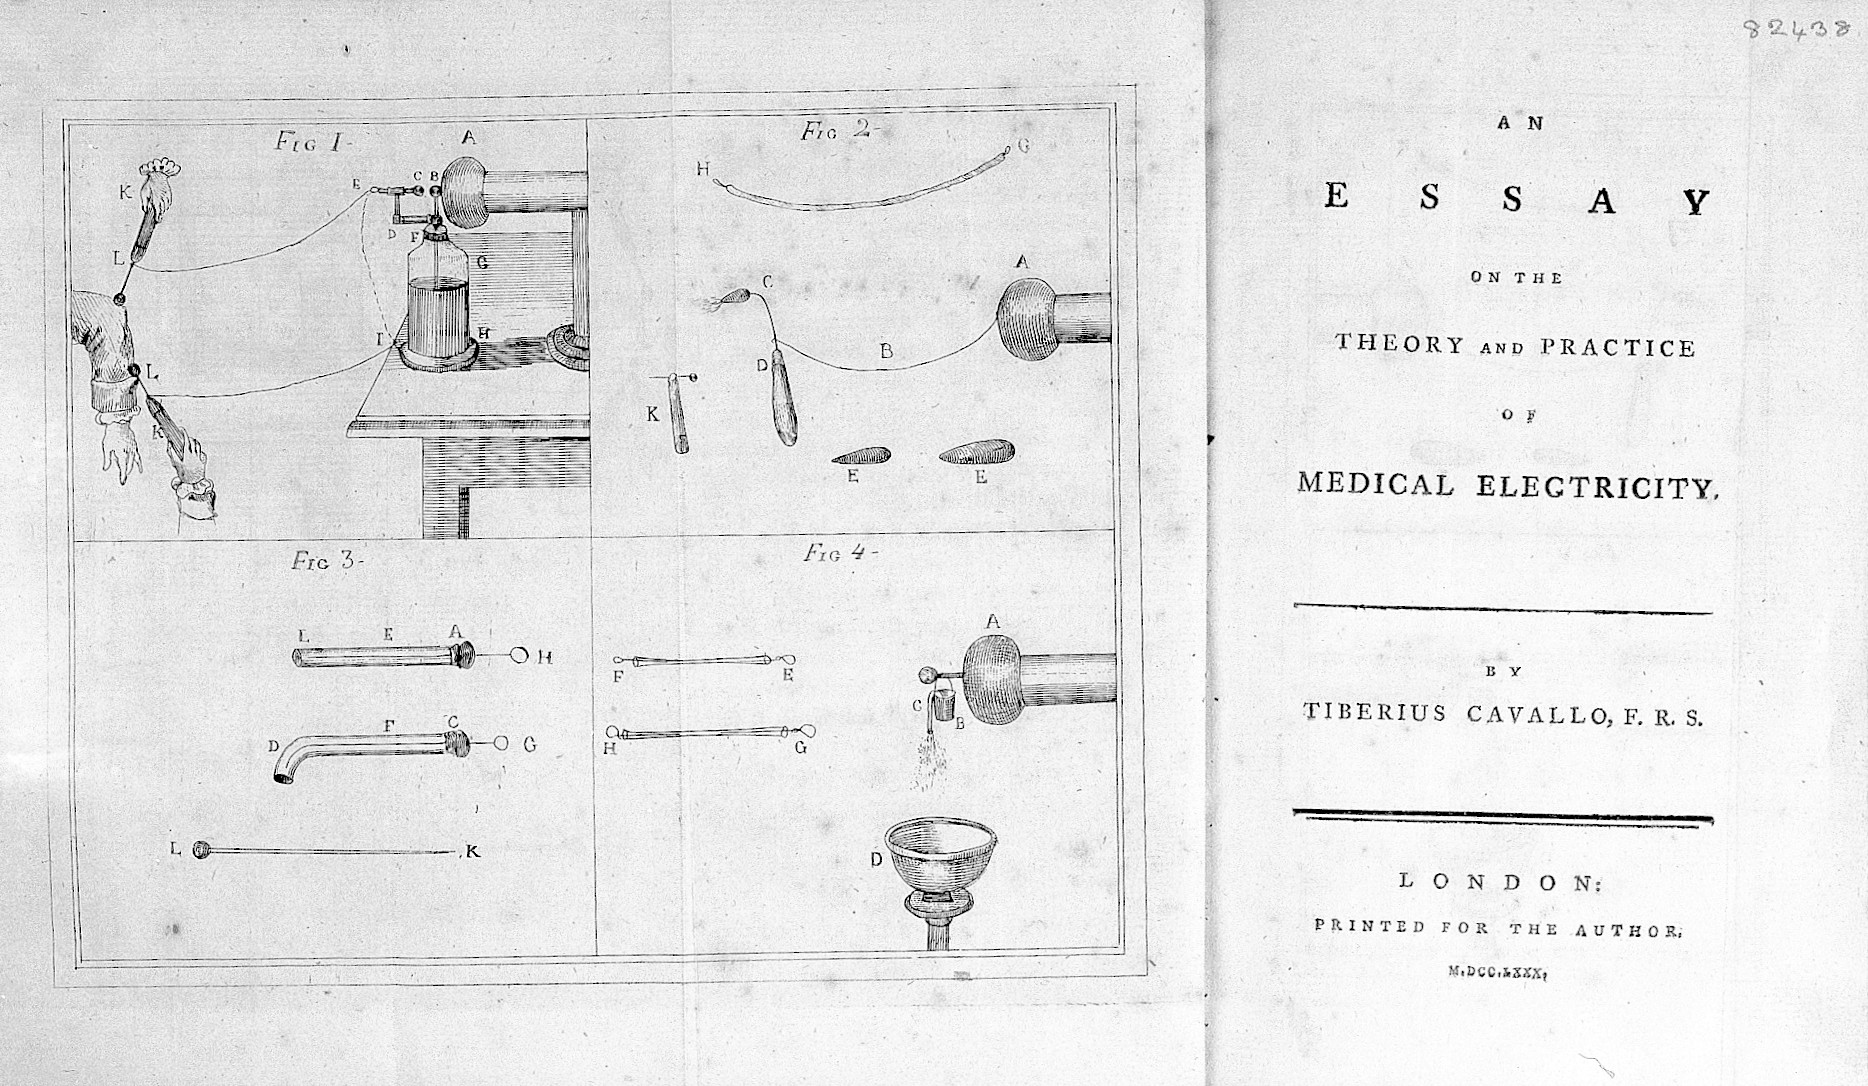 file cavallo essay on medical electricity title page  file cavallo essay on medical electricity 1780 title page